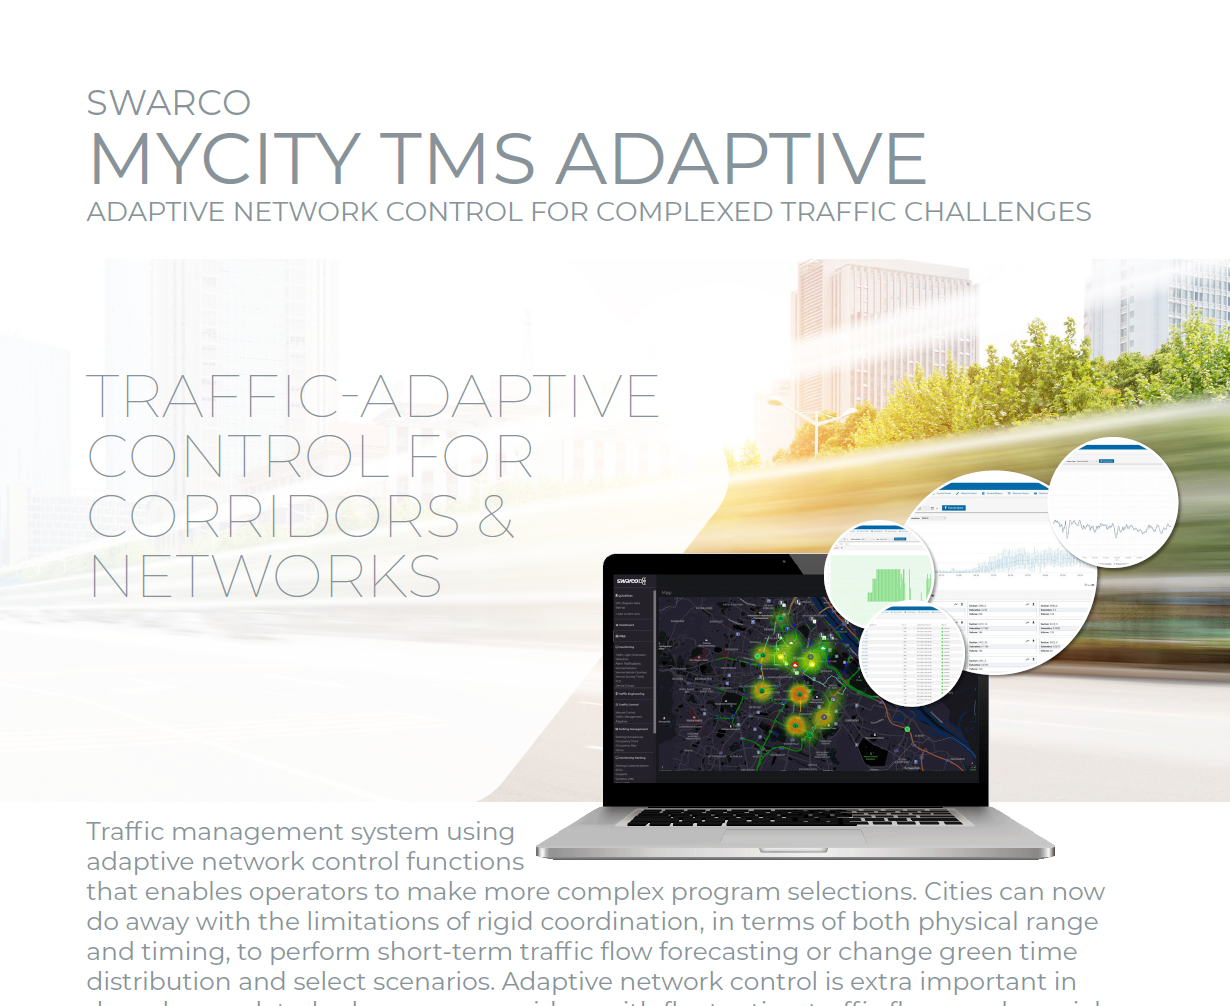 SWARCO MyCity TMS Adaptive Solution Sheet 2021